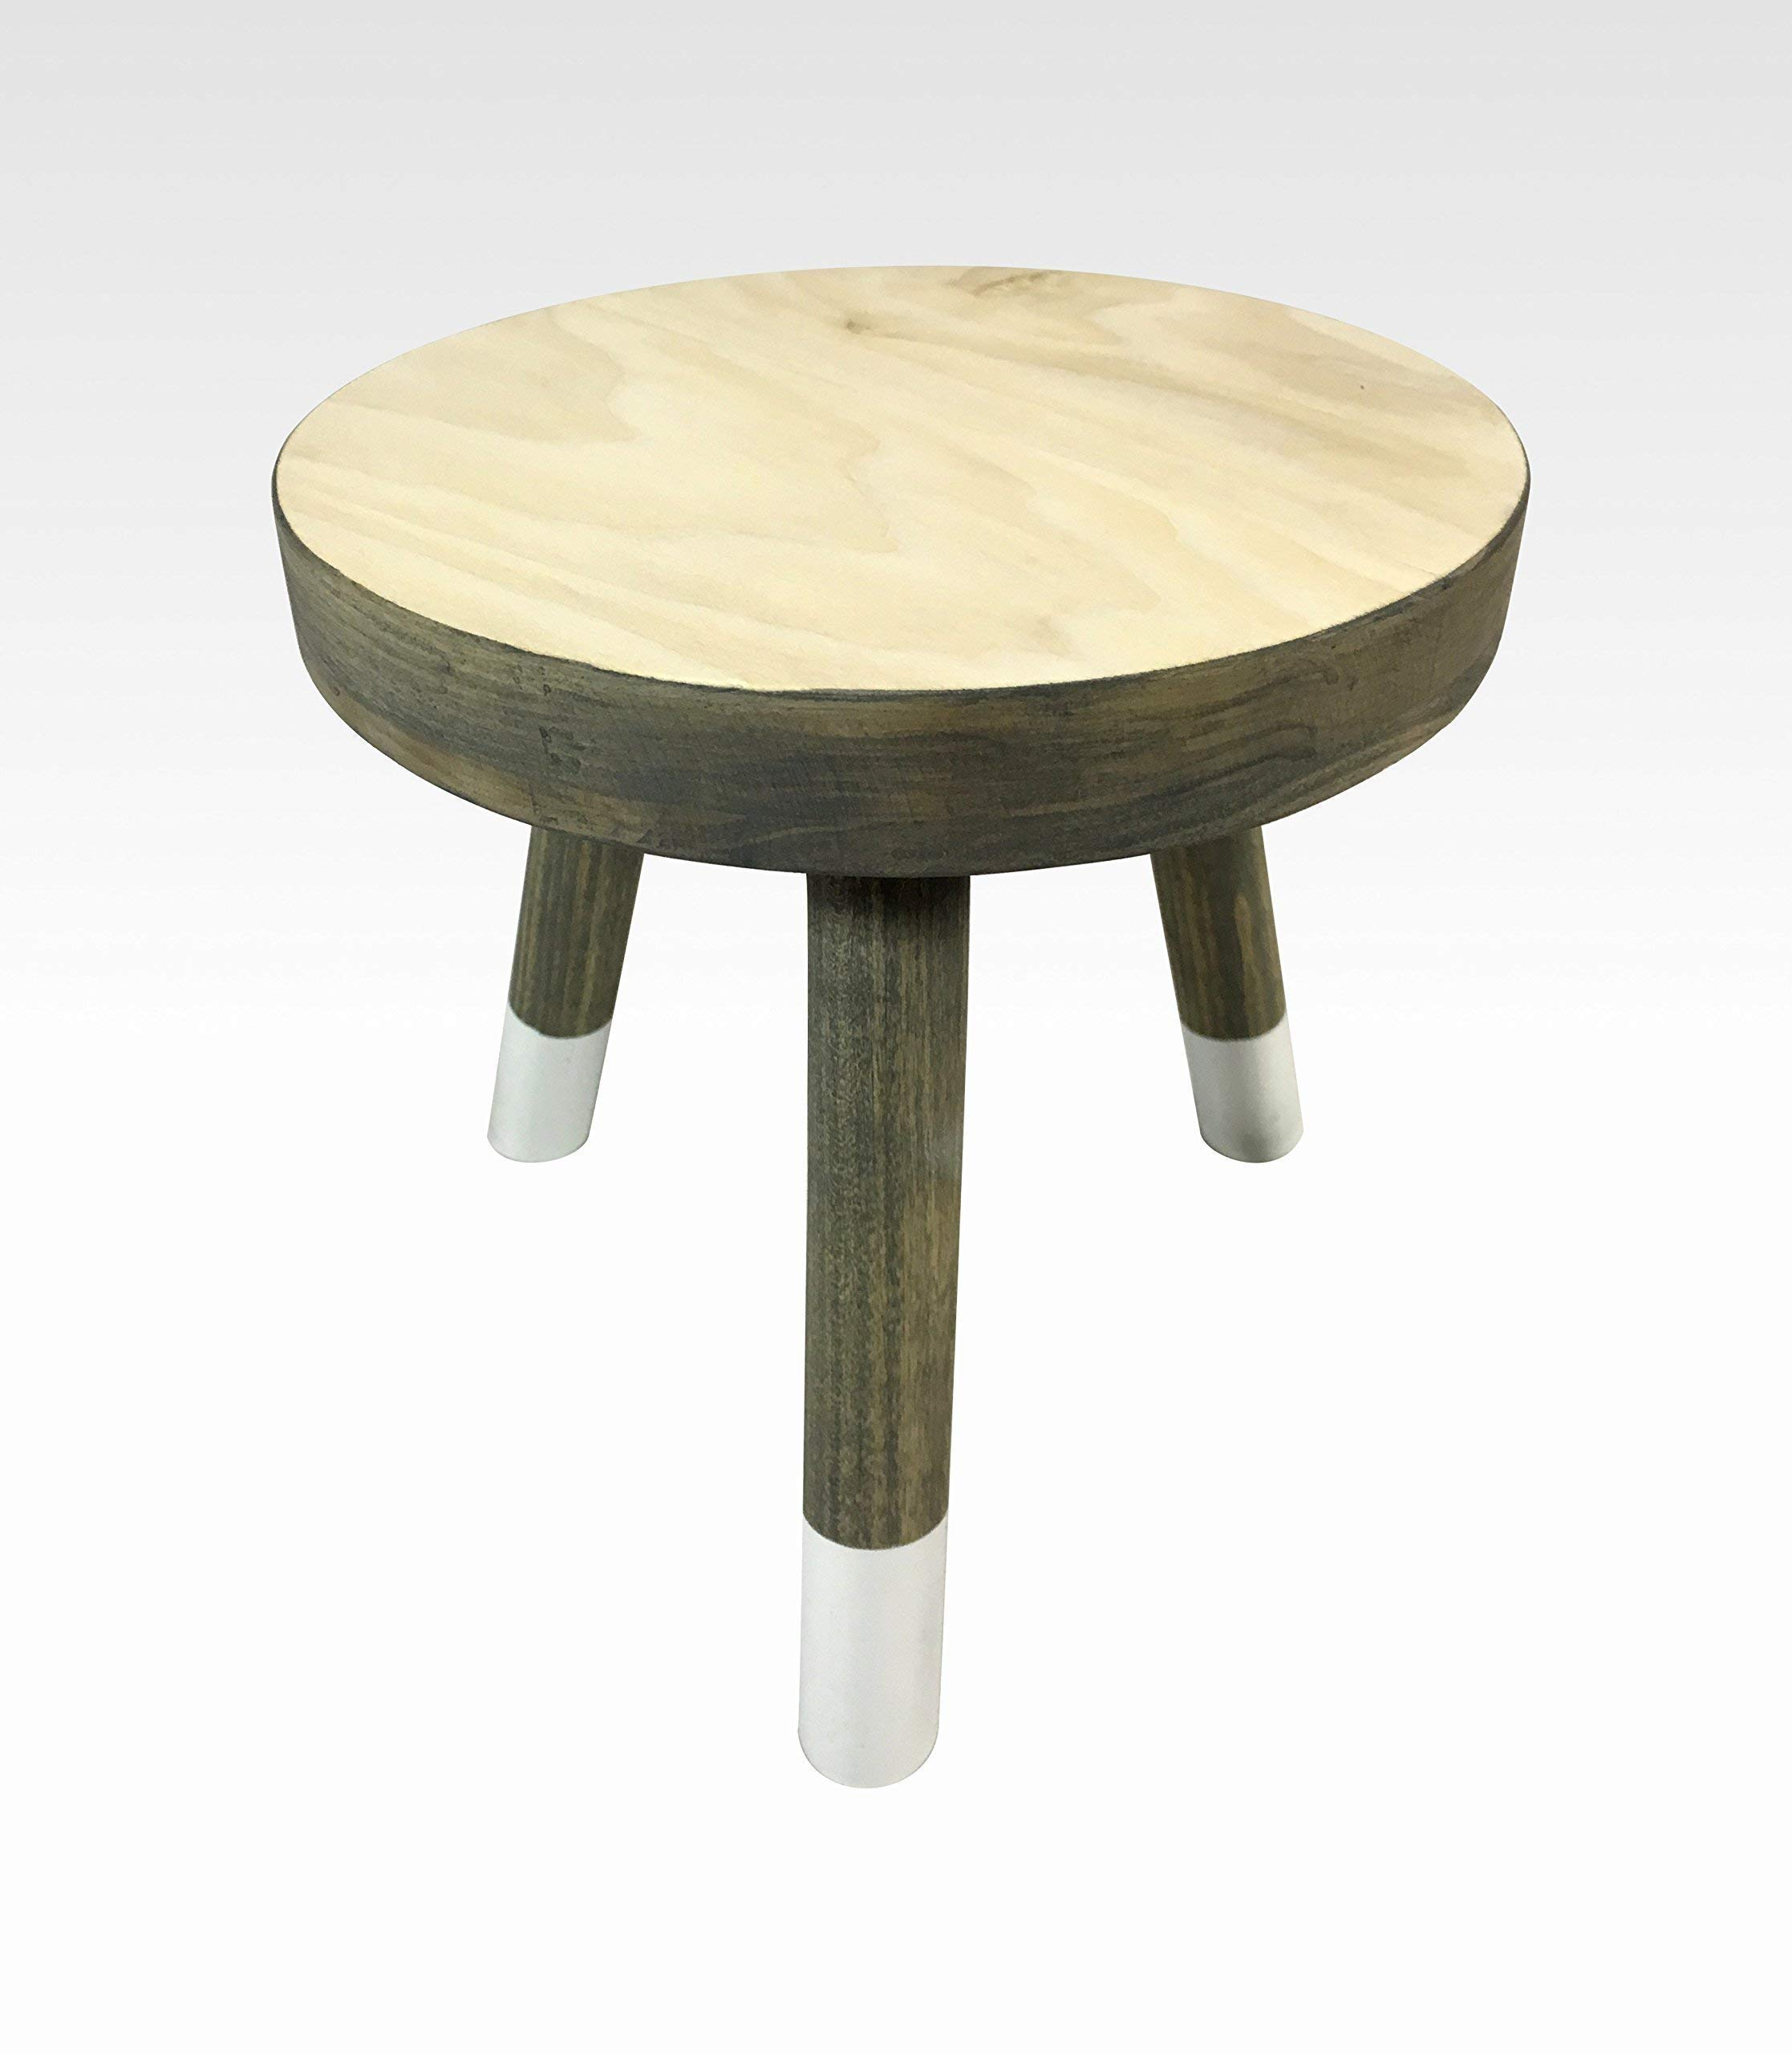 Modern Plant Stand Three Leg Stool by CW Furniture in Gray and White Indoor Wood Flower Pot Base Display Holder Solid Wooden Kids Chair Table Simple Minimalist Small by Candlewood Furniture